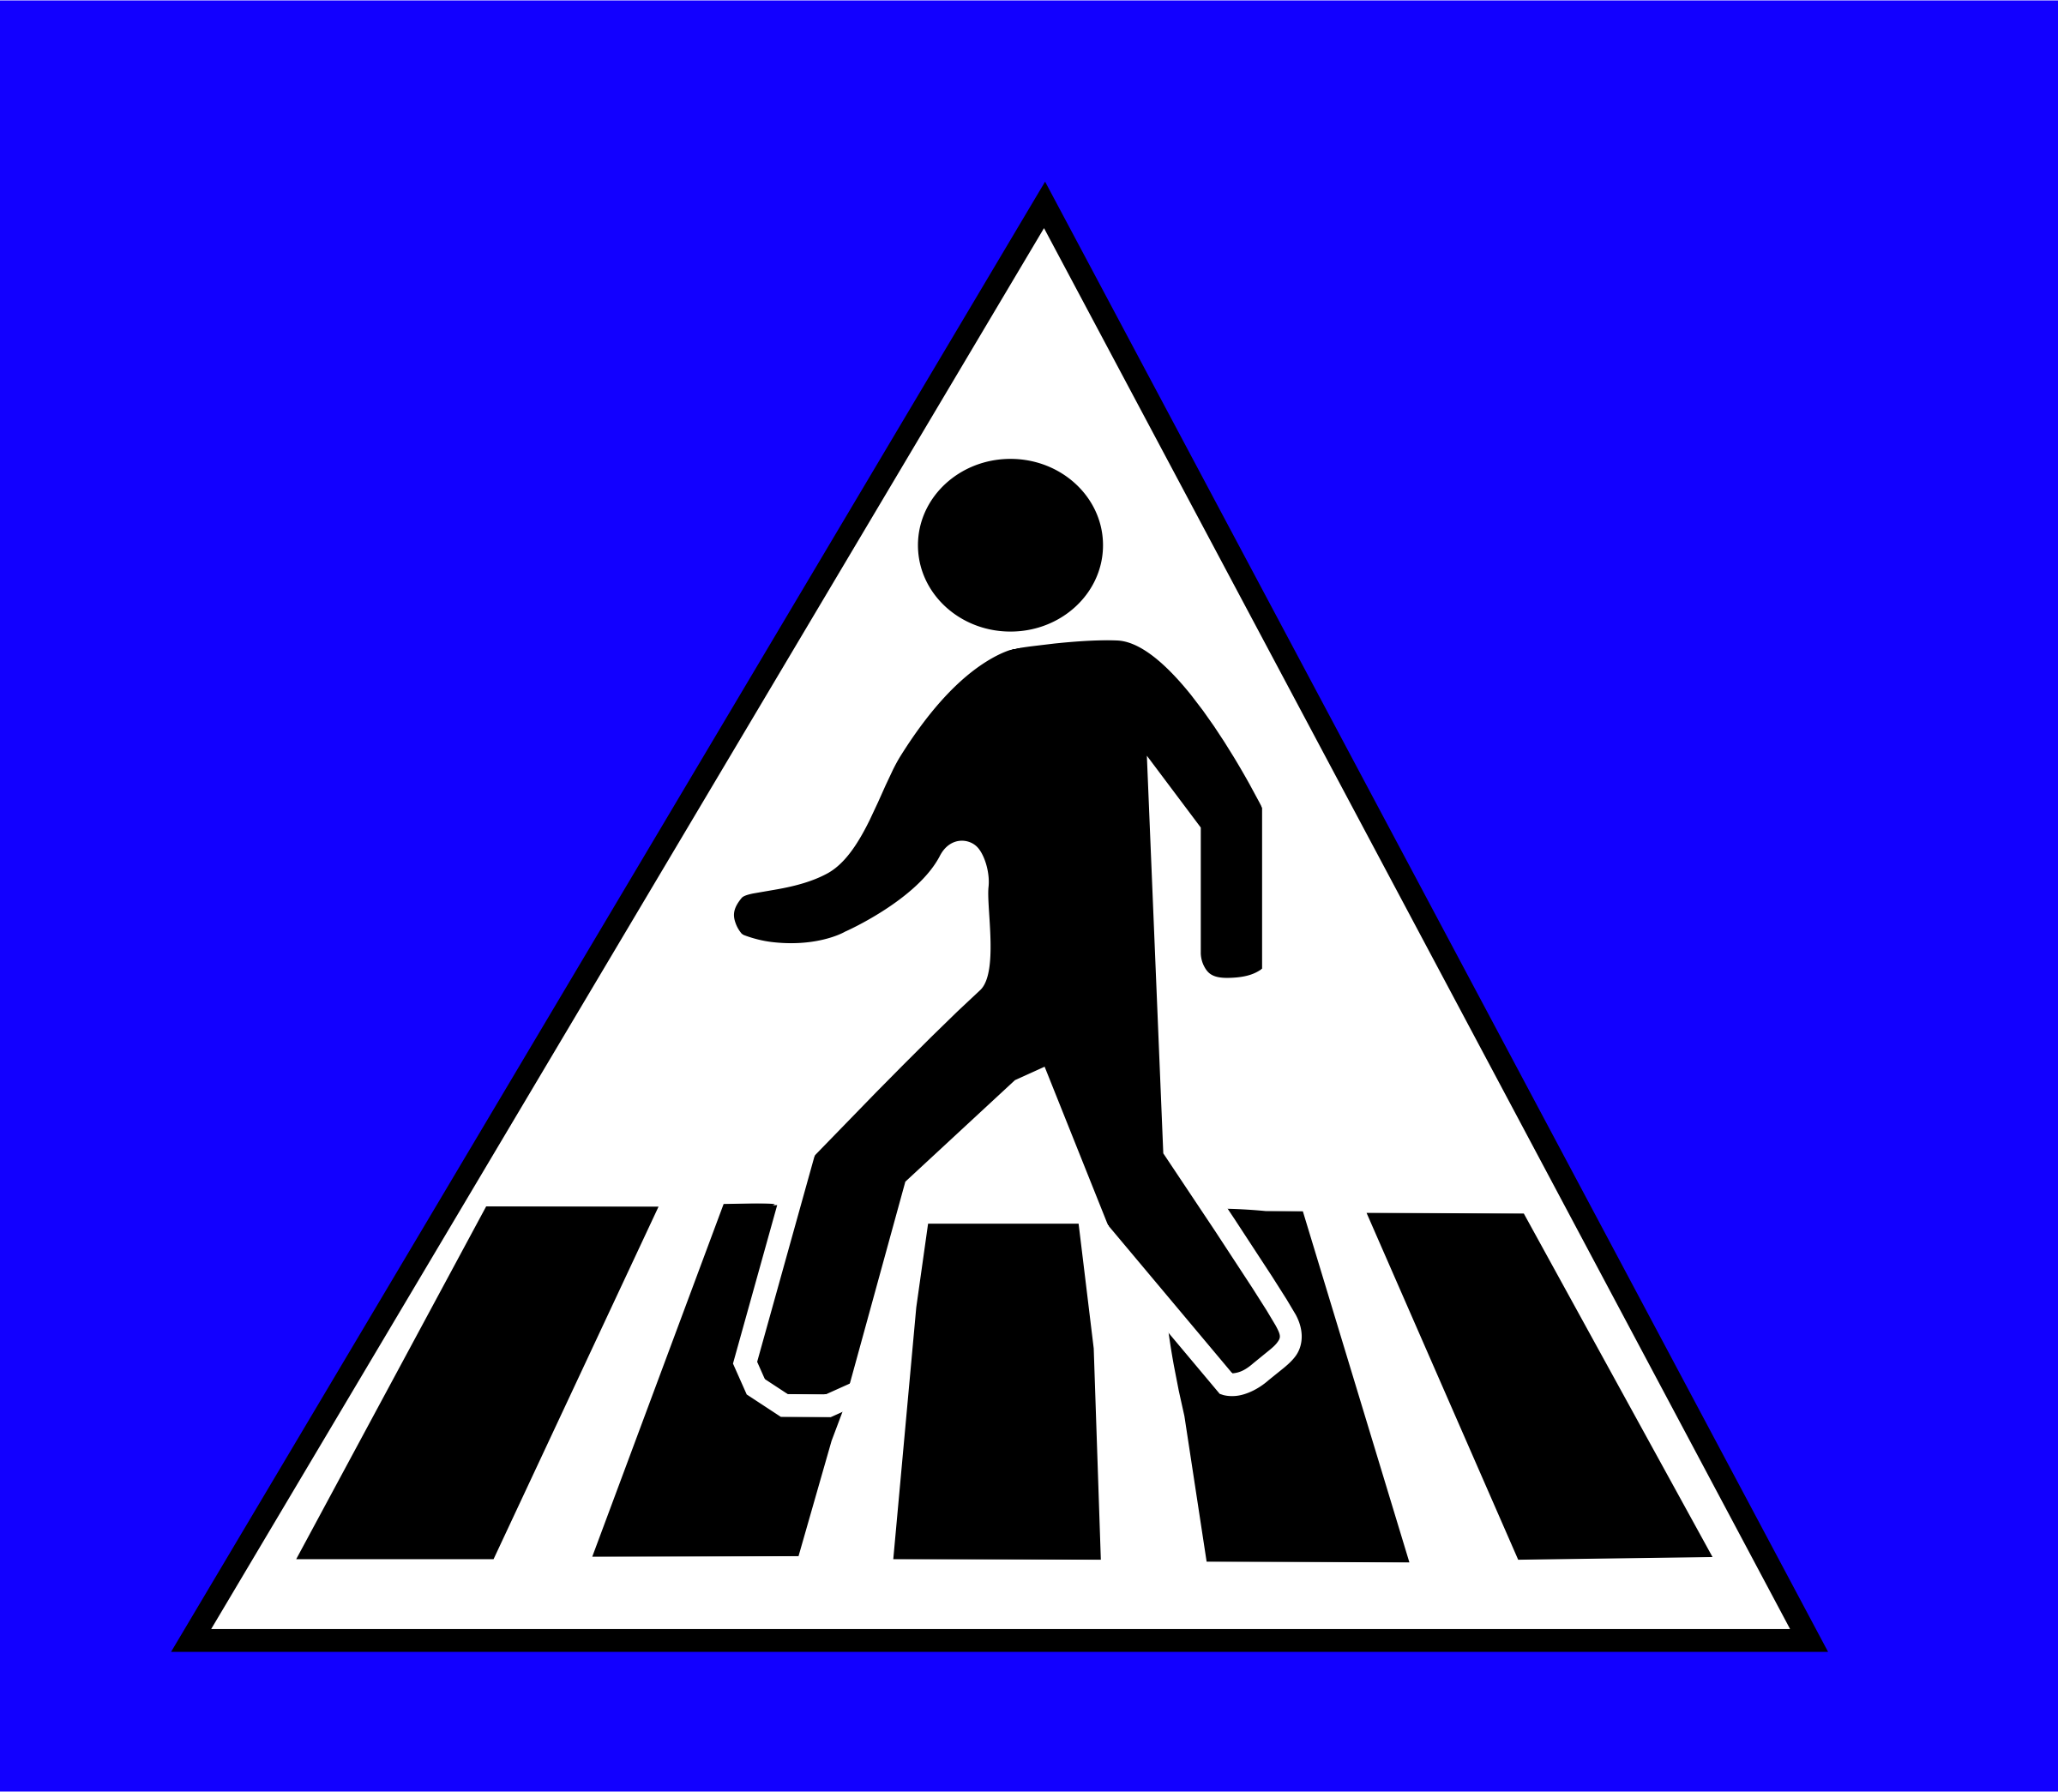 Crossing Traffic Sign by mokush